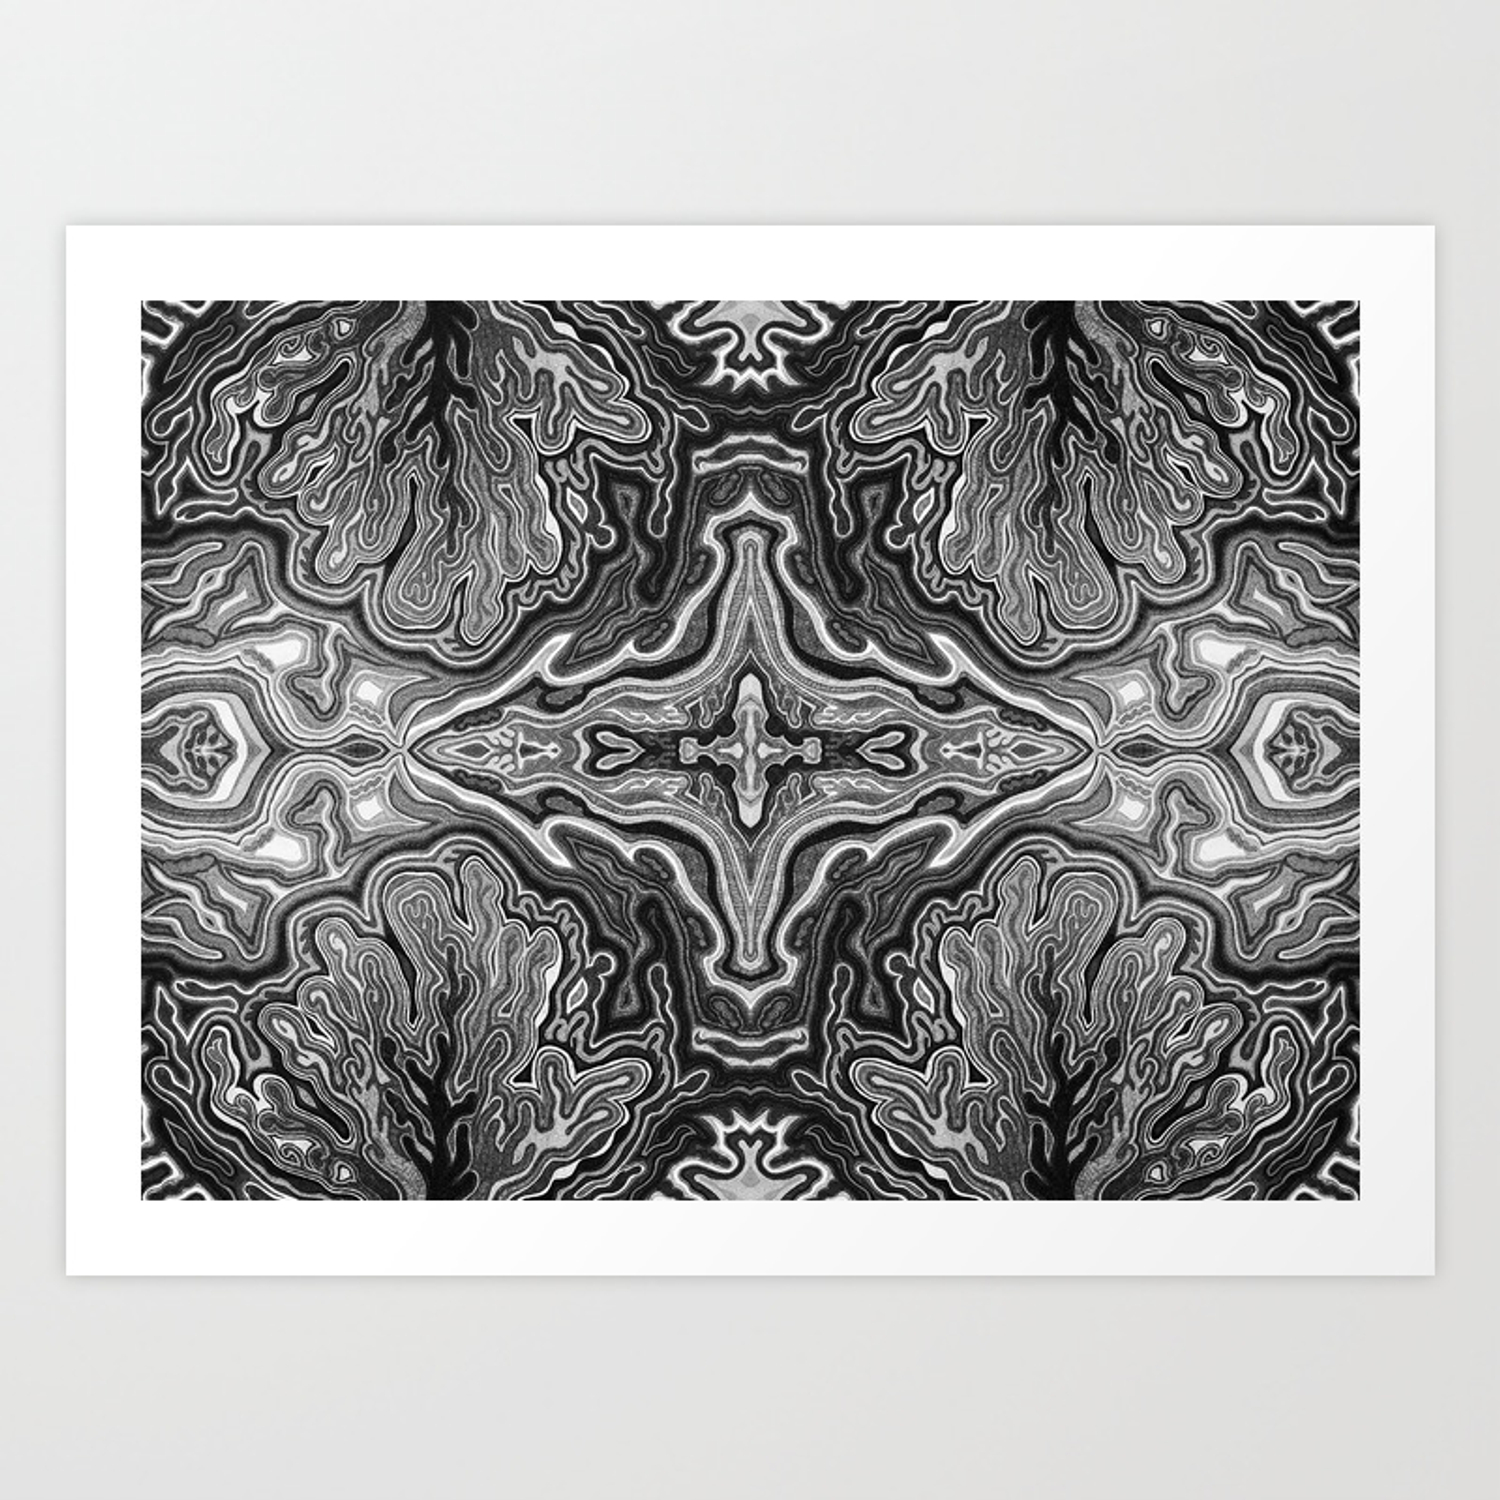 Abstract 4 v high contrast black white art print